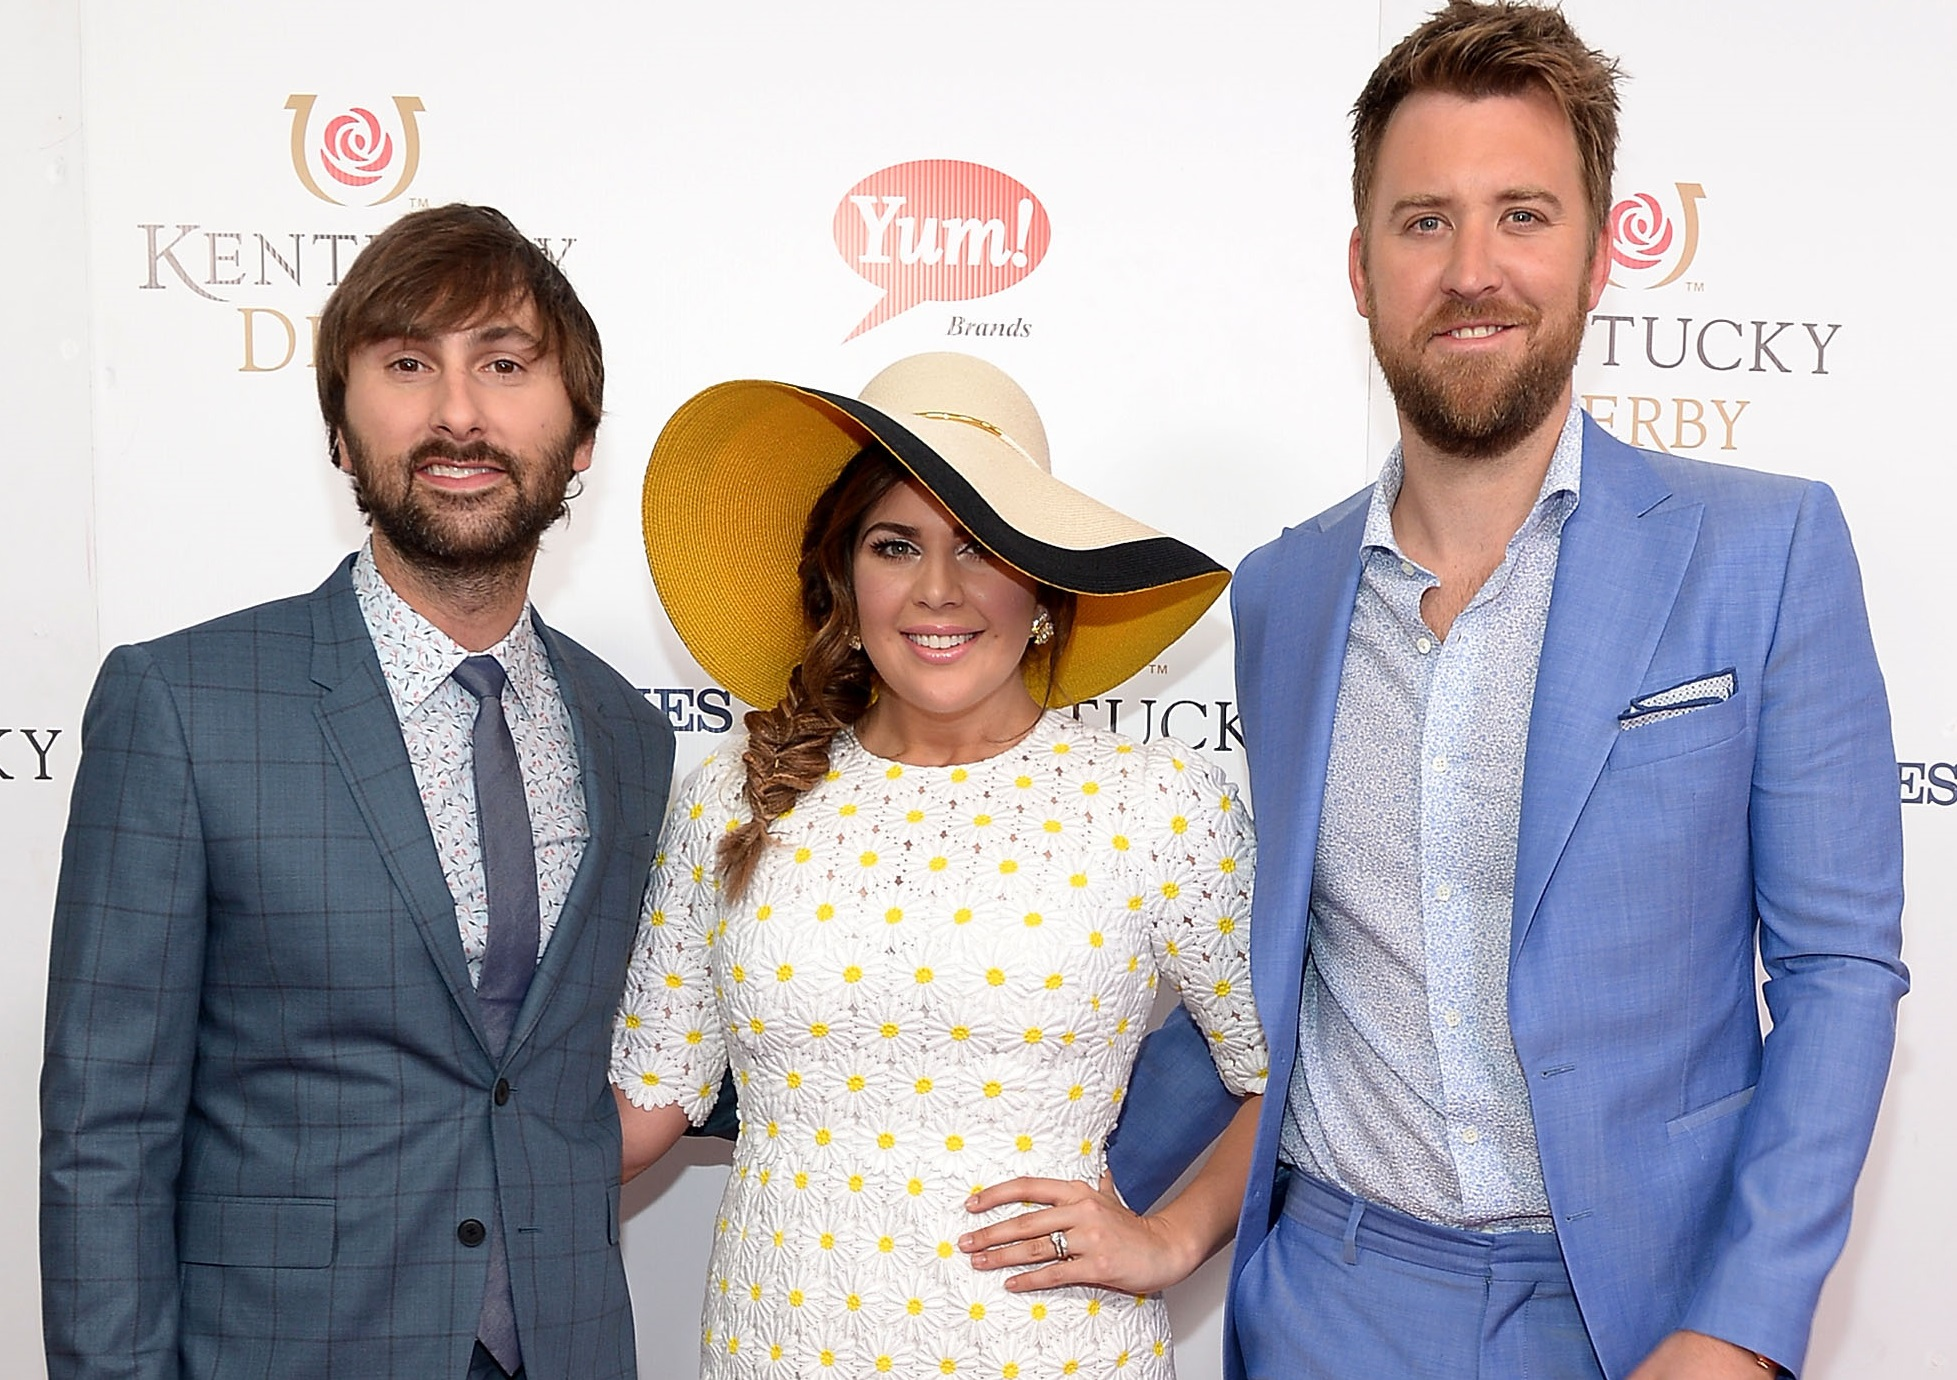 Lady Antebellum Sings The National Anthem In Pouring Rain